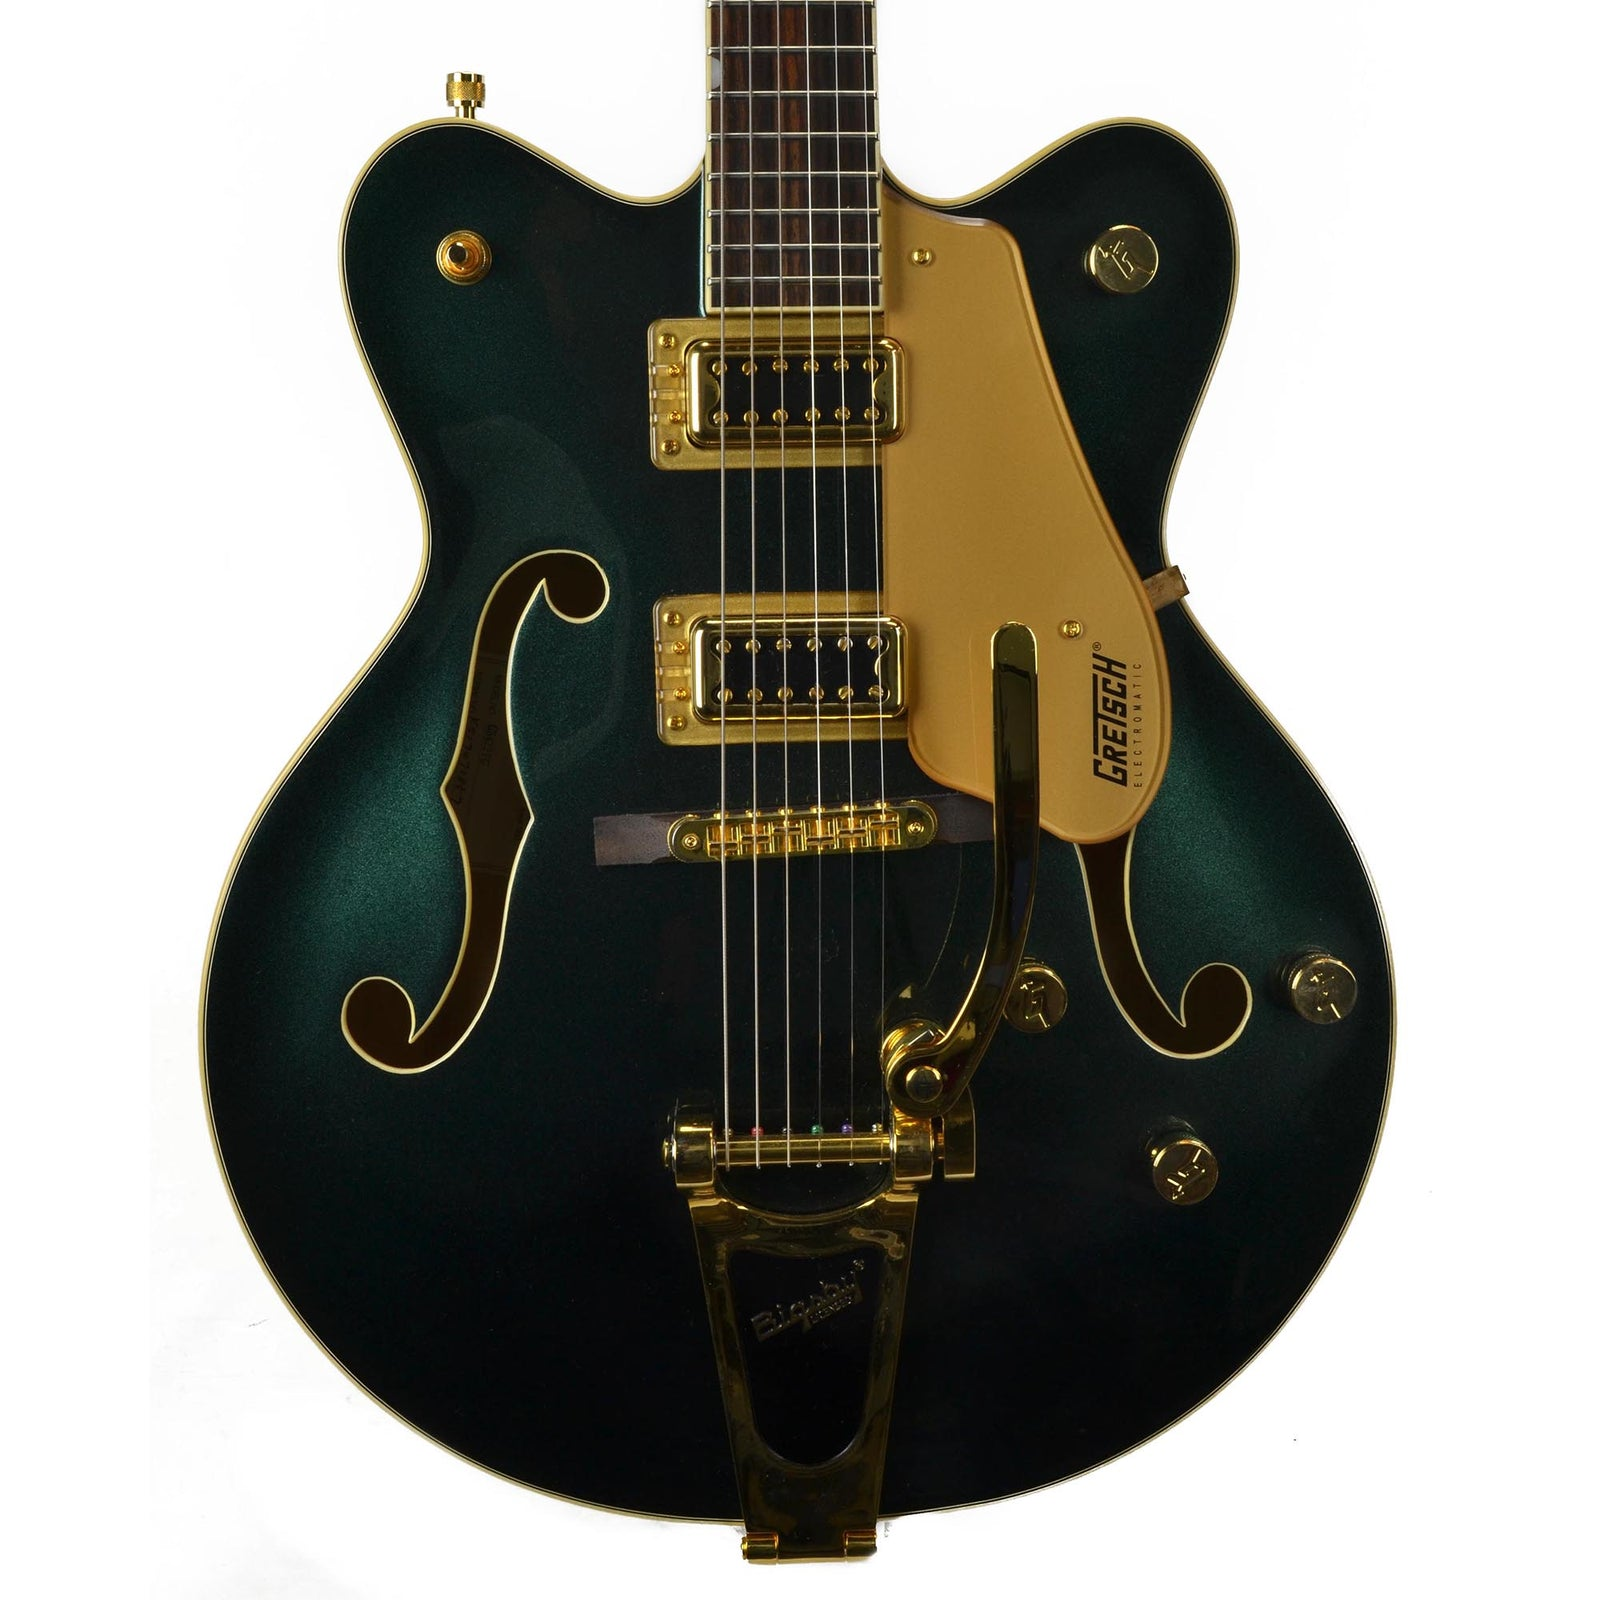 Gretsch G5422TG Limited Edition - Cadillac Green - Used